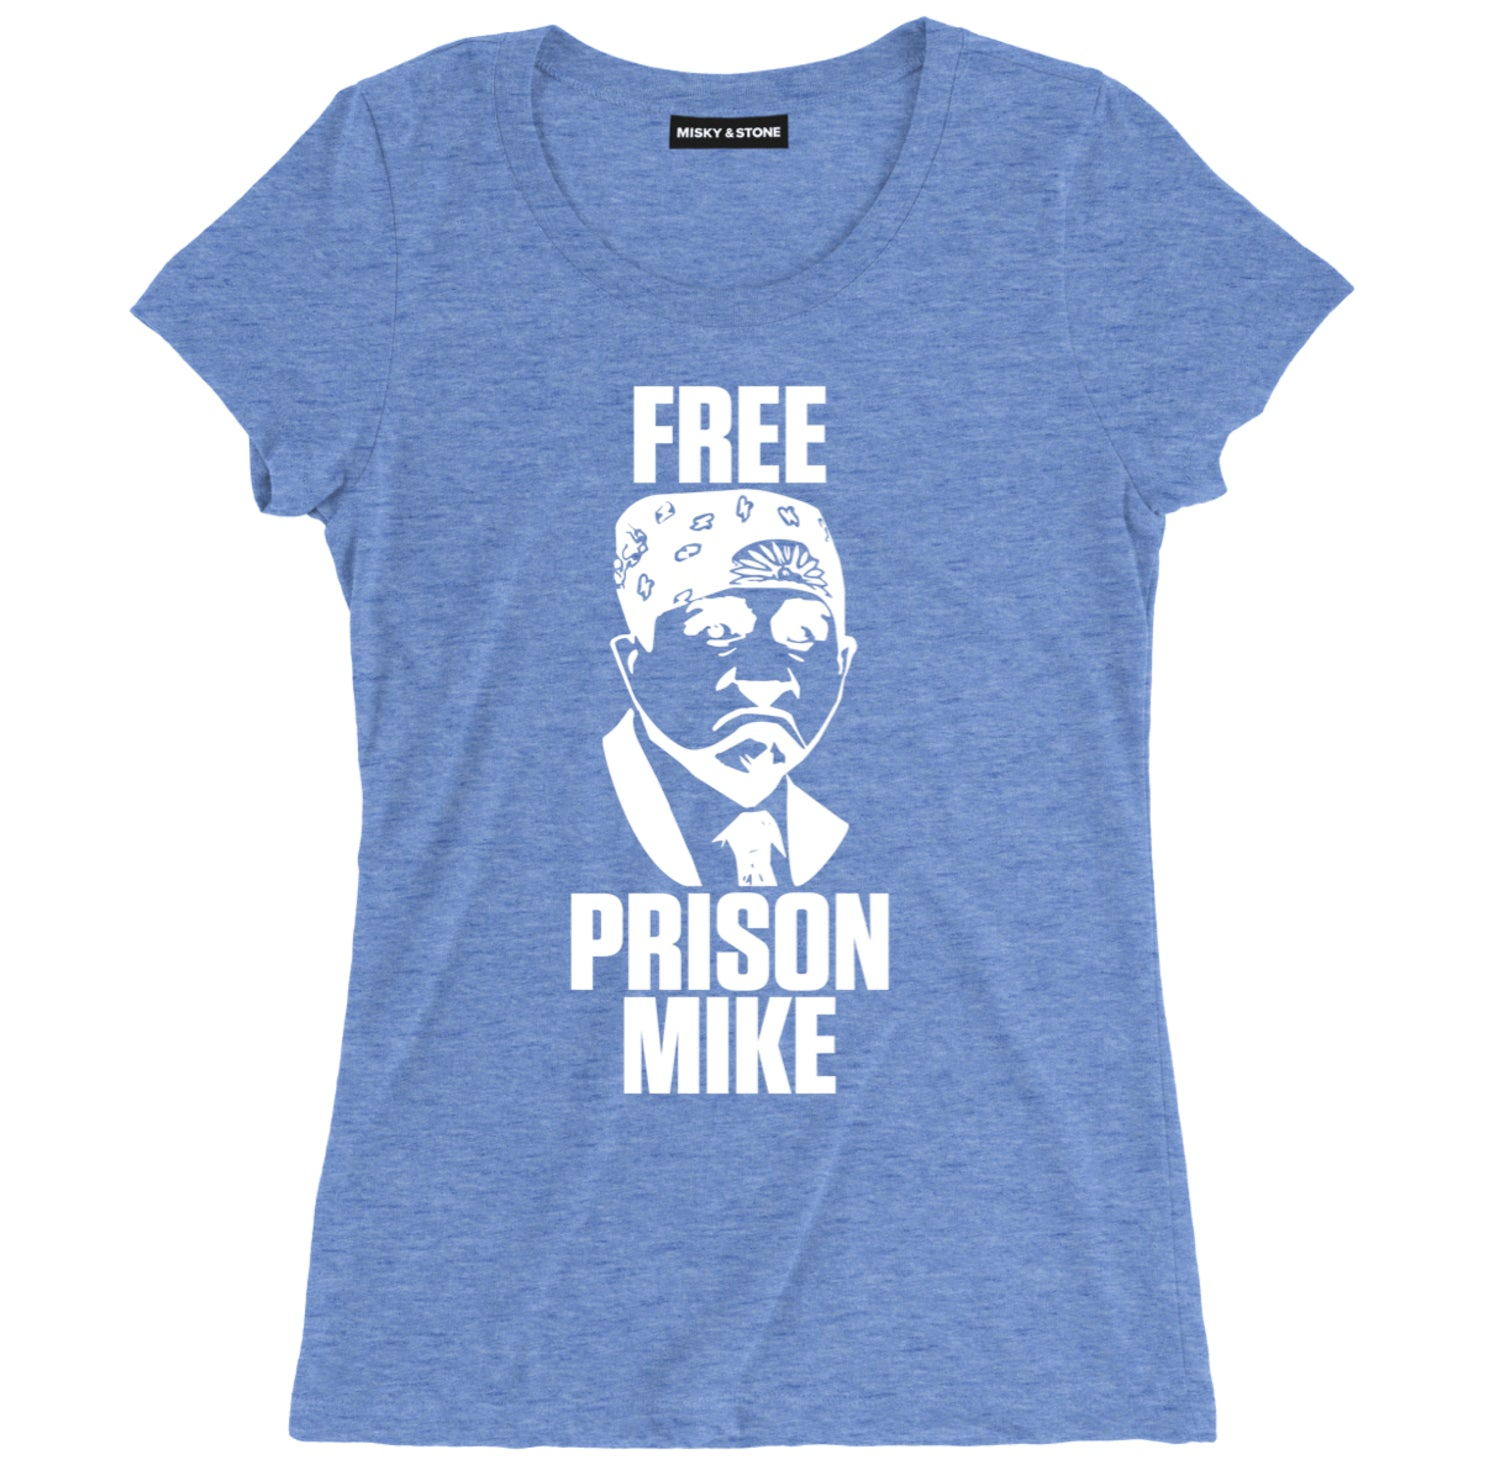 Free Prison Mike Womens Soft Cotton Tee